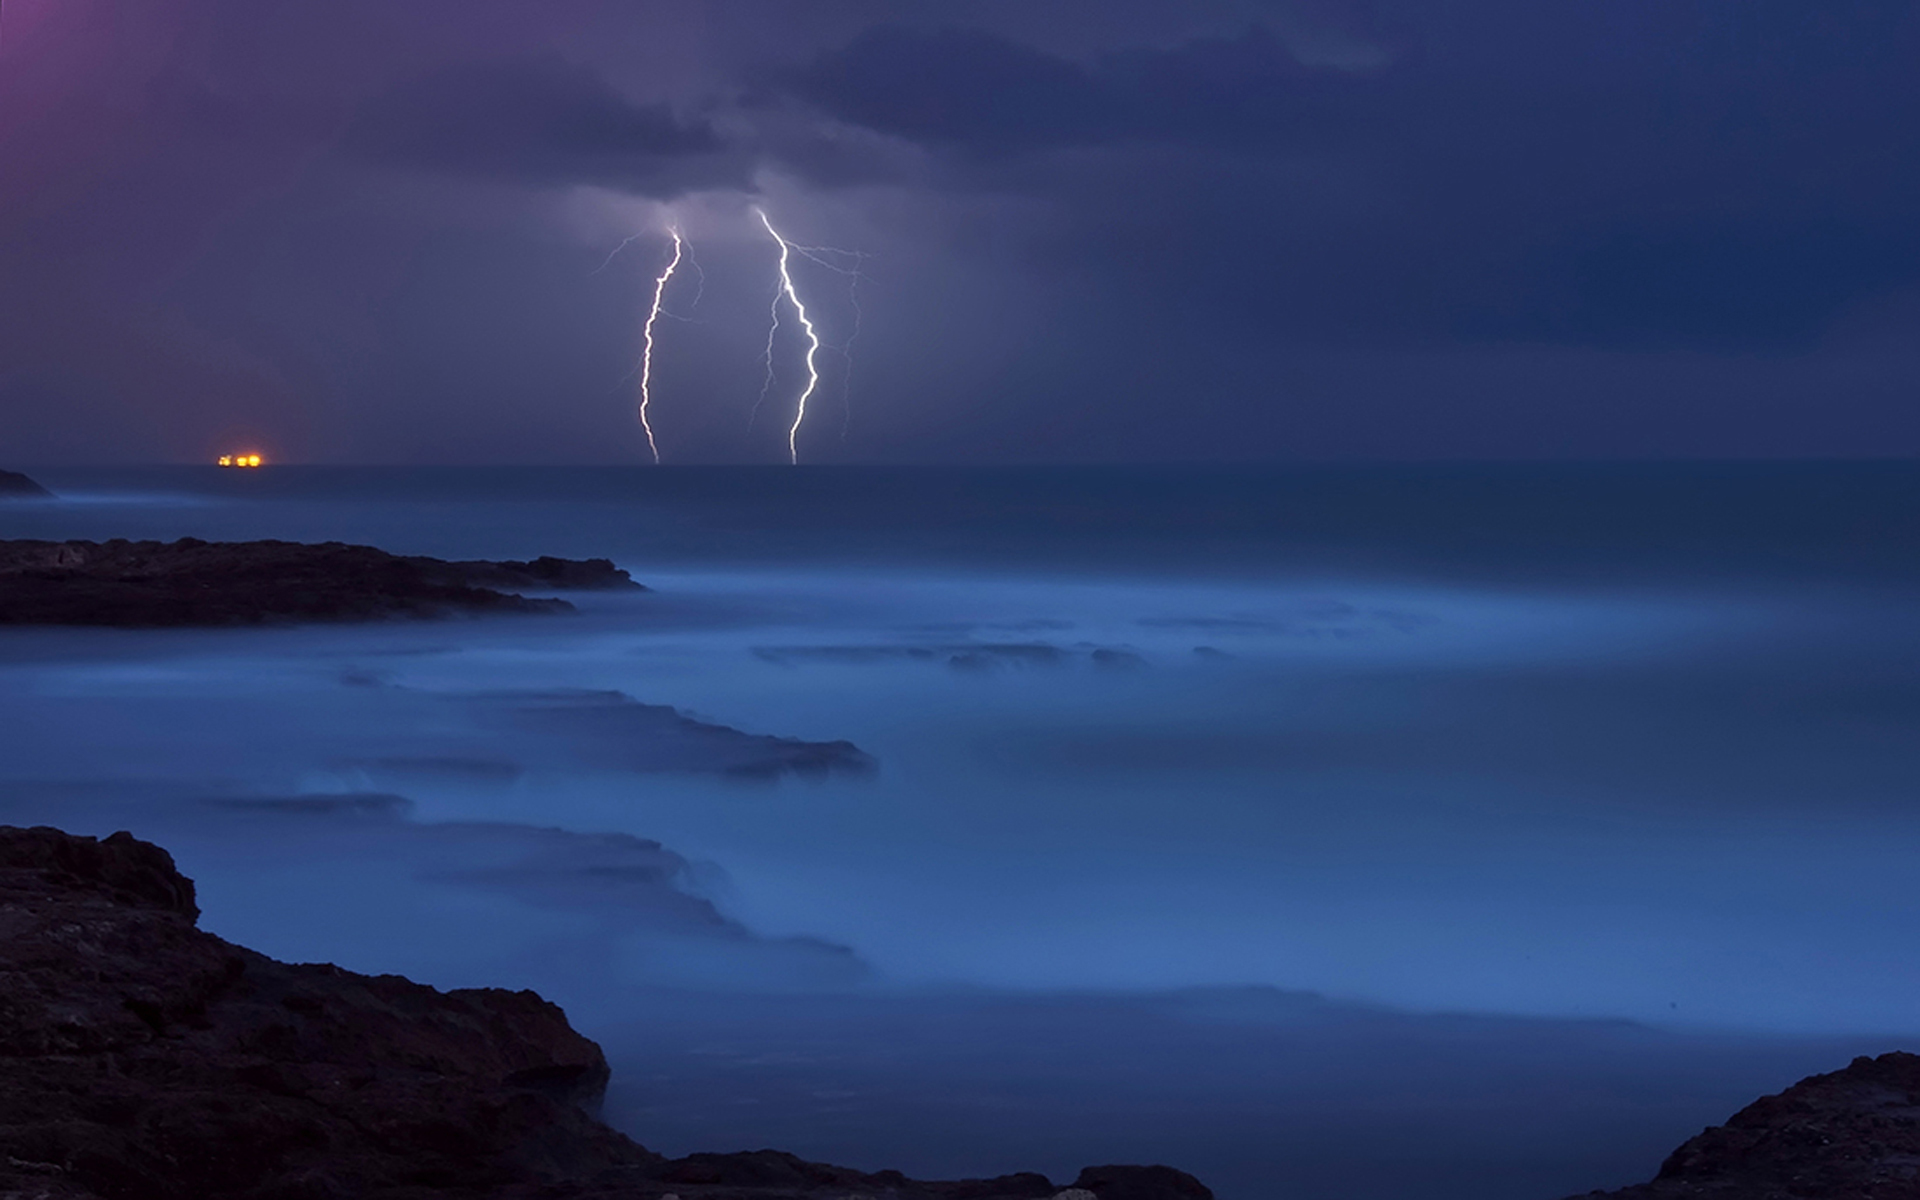 Lightning full hd wallpaper and background image for Sfondi hd mare